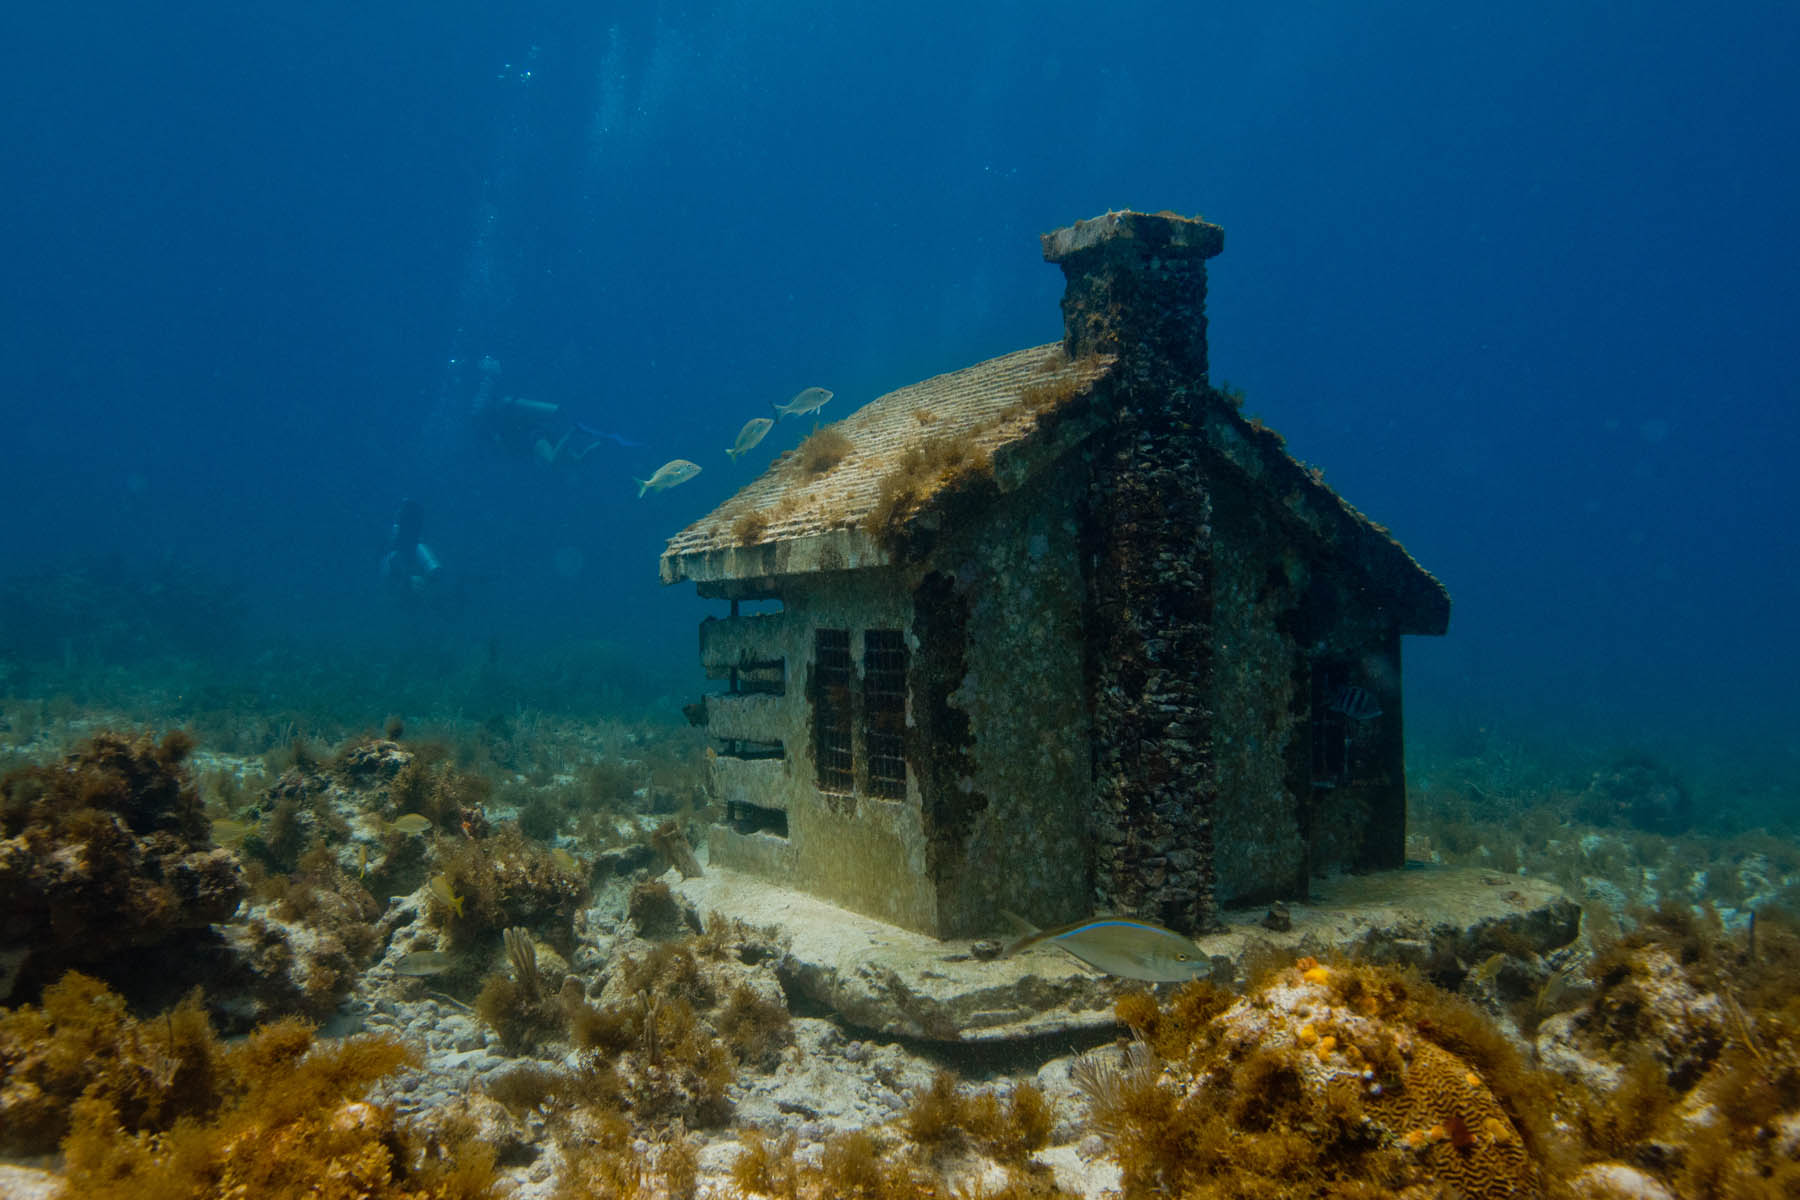 Urban-Reef-House-I-Underwater-sculpture-Jason-deCairesTaylor-